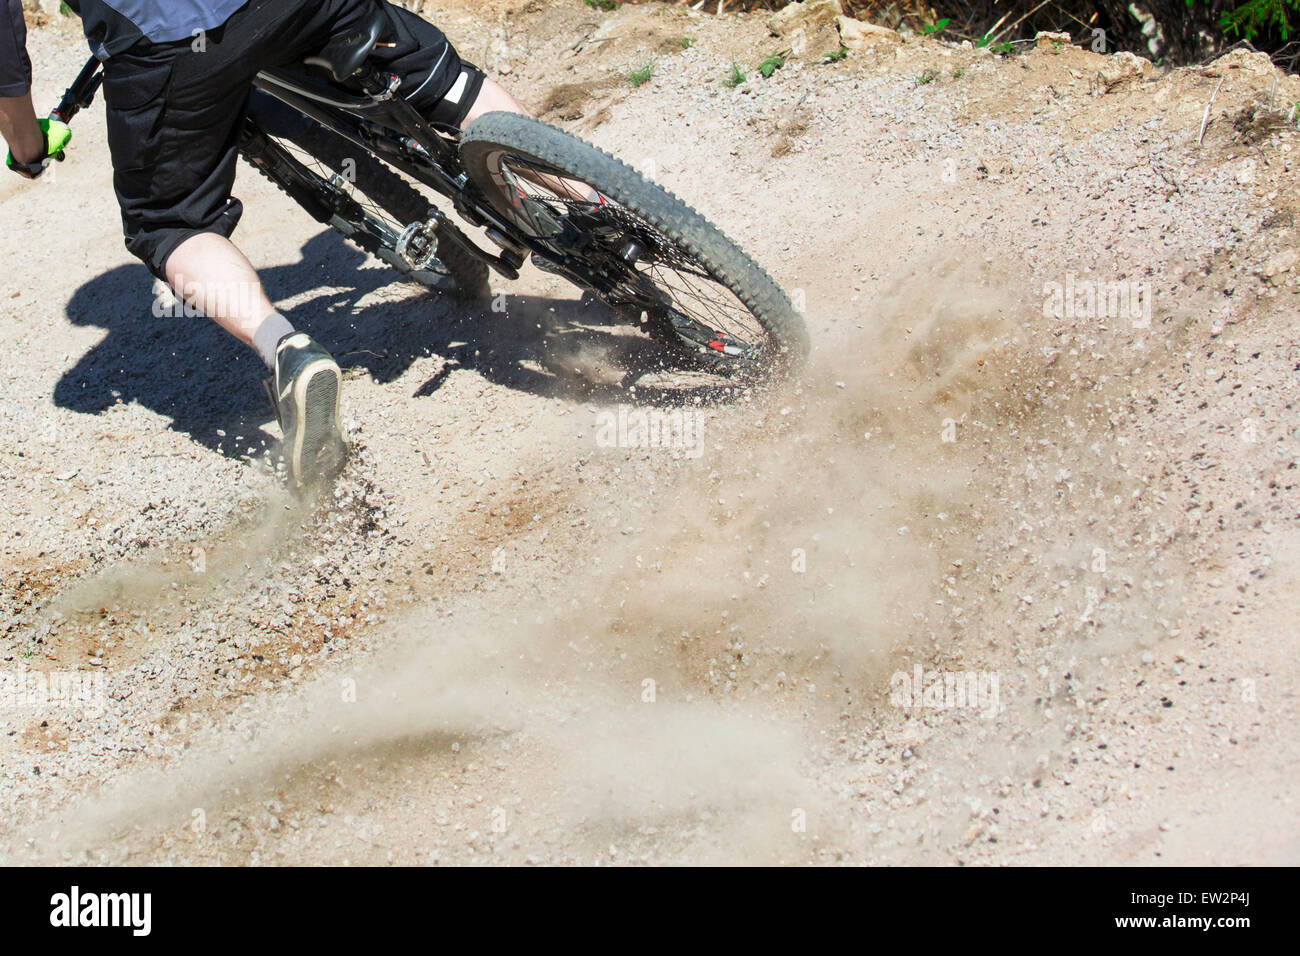 Unfiltered version of mountain bike rider drifting through a gravity slope of an artificial downhill track. Gravel - Stock Image